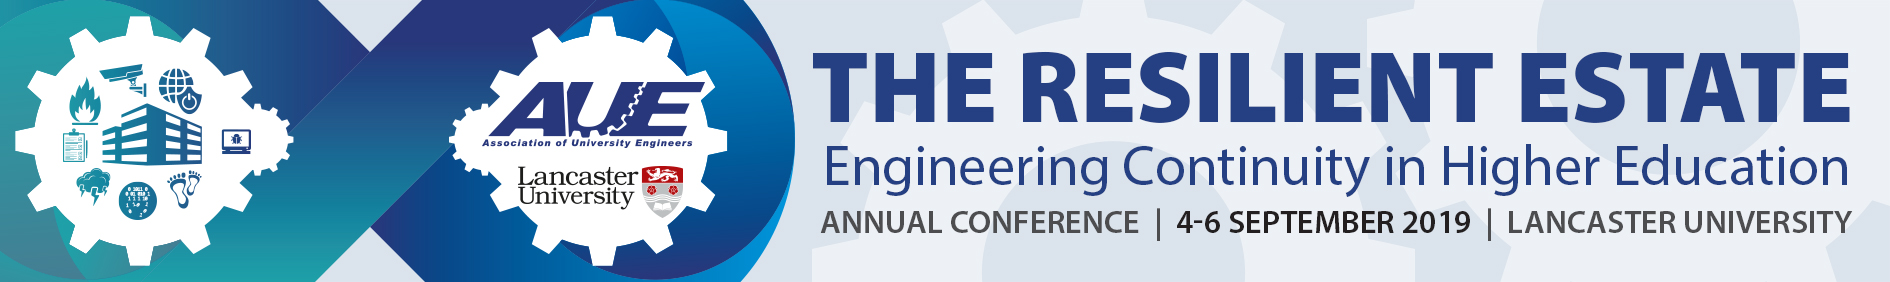 AUE Annual Conference 2019